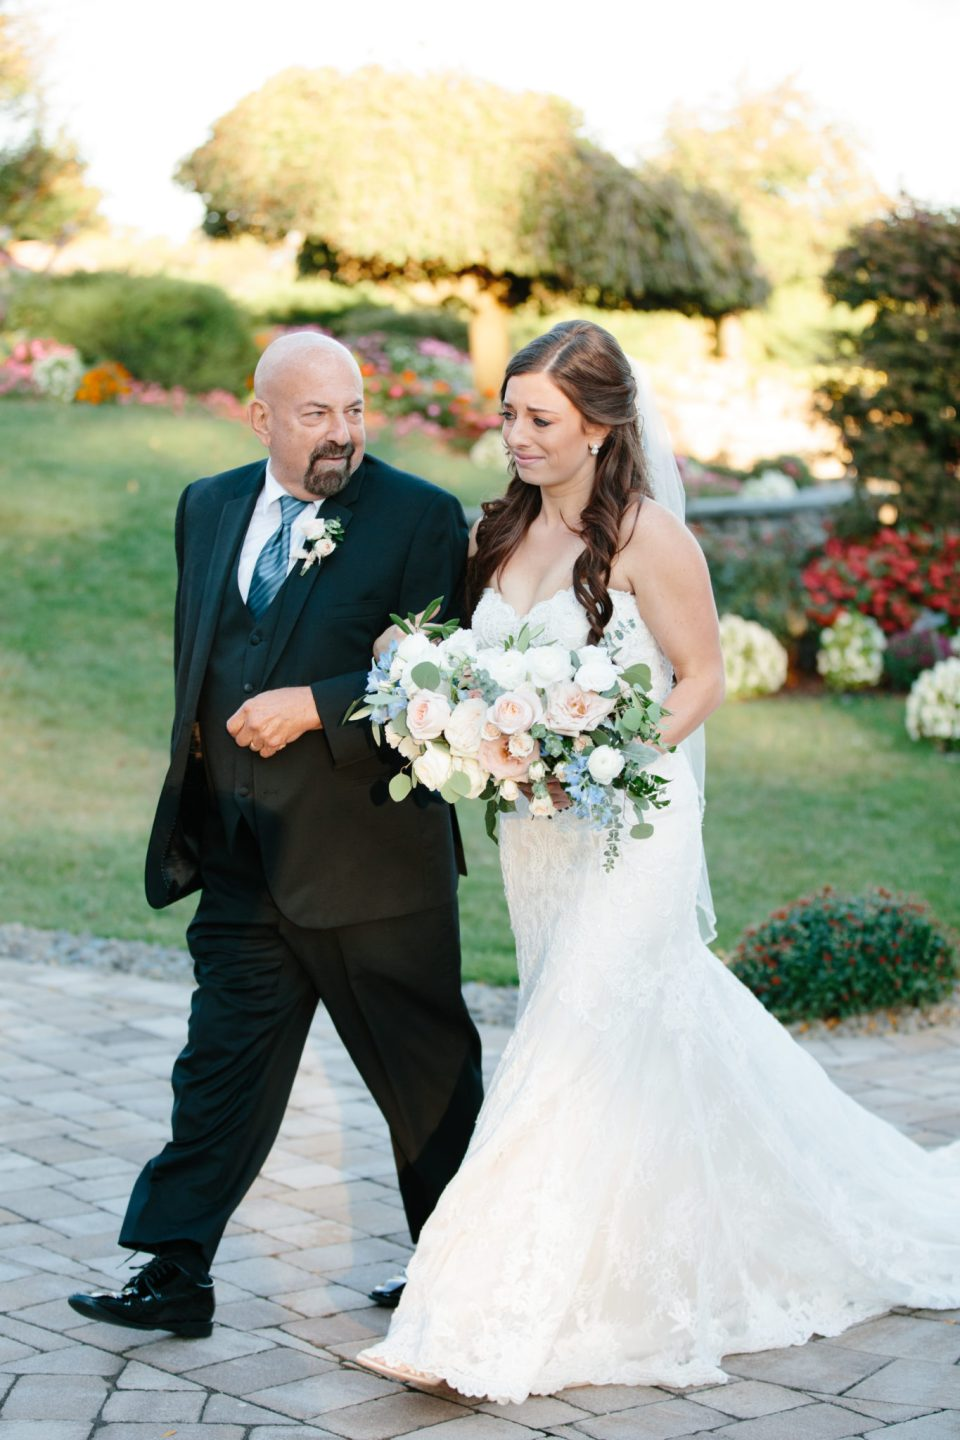 Ashley Mac Photographs photographs bride walking down the aisle with father